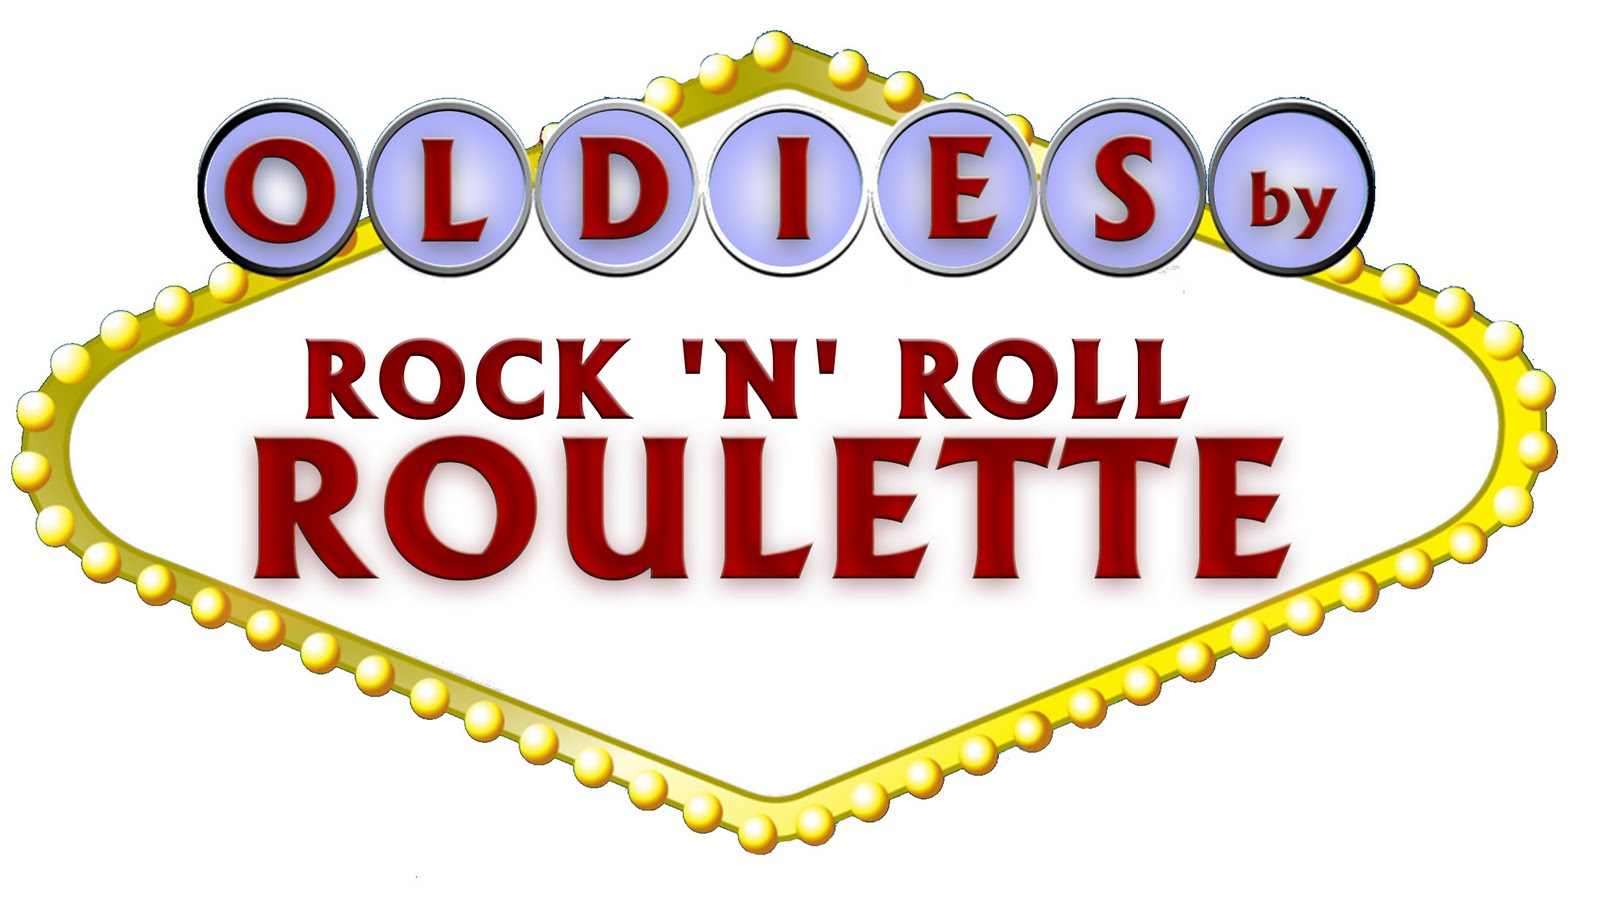 Rock roulette band